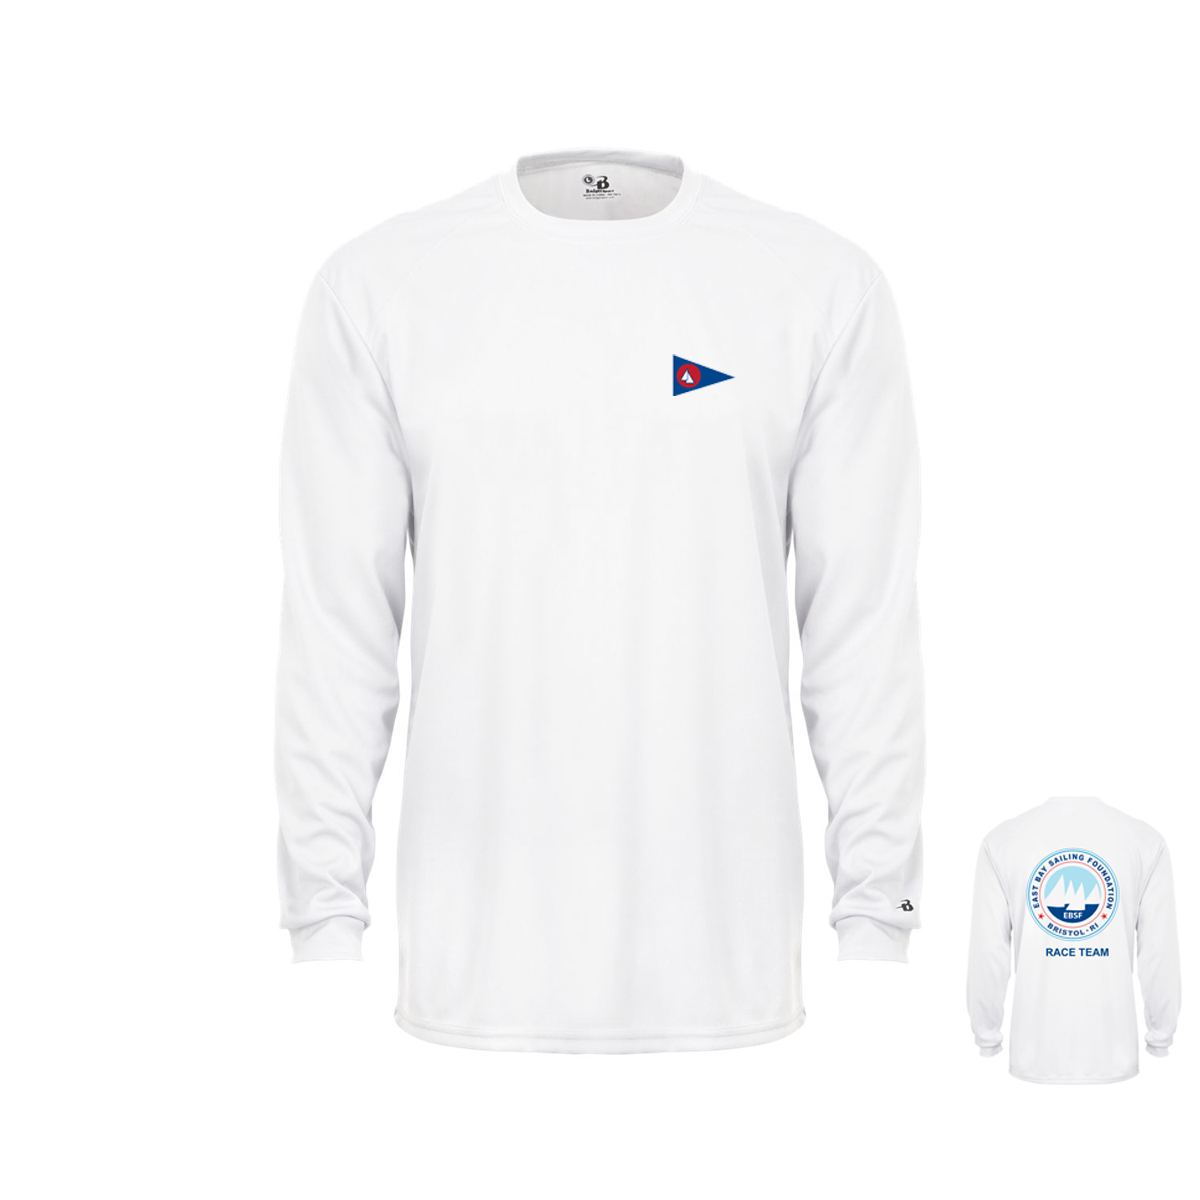 EBSF - K'S RACE TEAM L/S TECH TEE